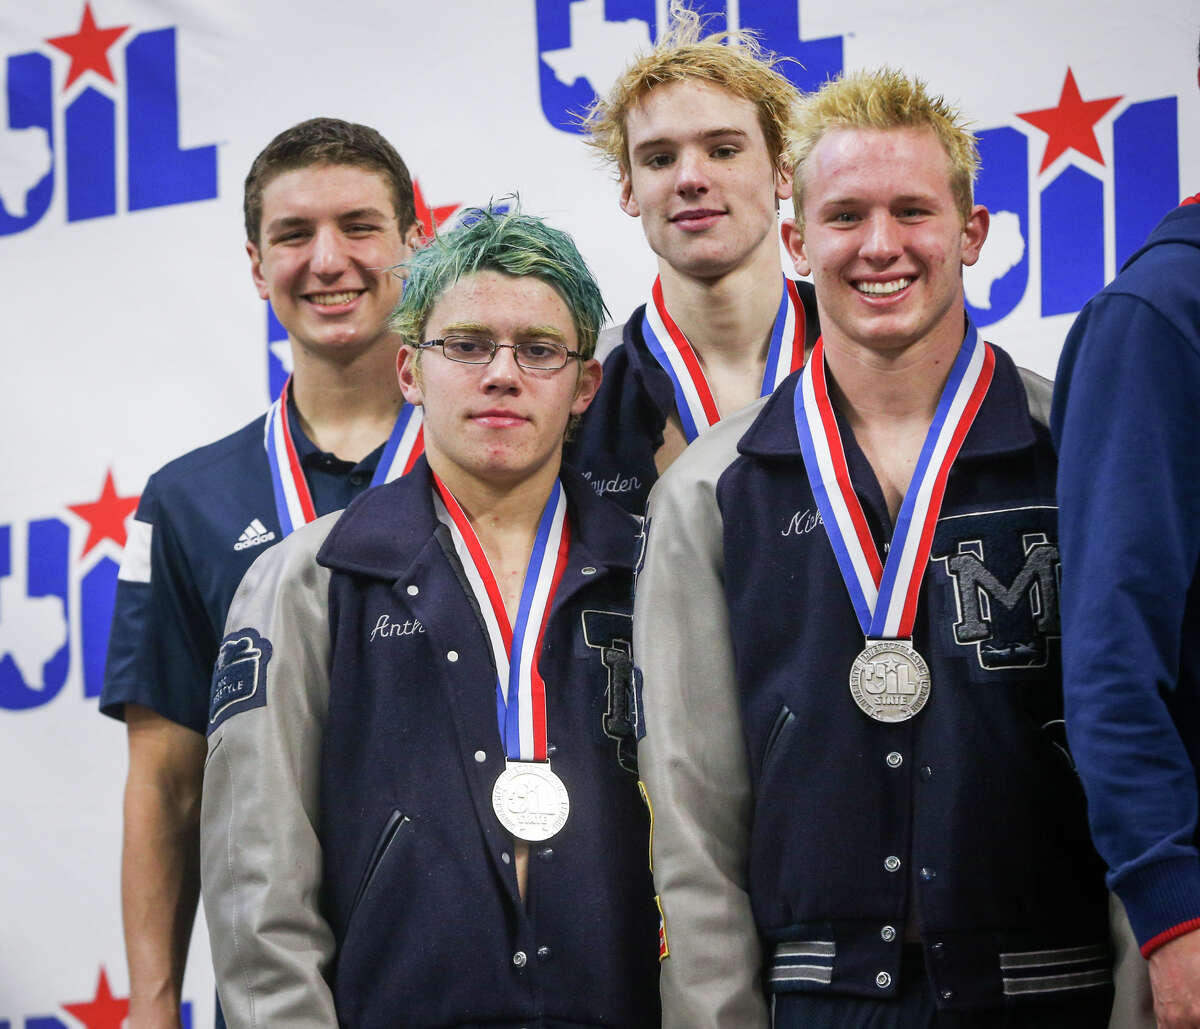 Tomball Memorial places second in the boys 400-yard freestyle relay during the Class 5A UIL Swimming and Diving State Meet on Saturday, Feb. 18, 2017, in Austin. (Michael Minasi / Chronicle)